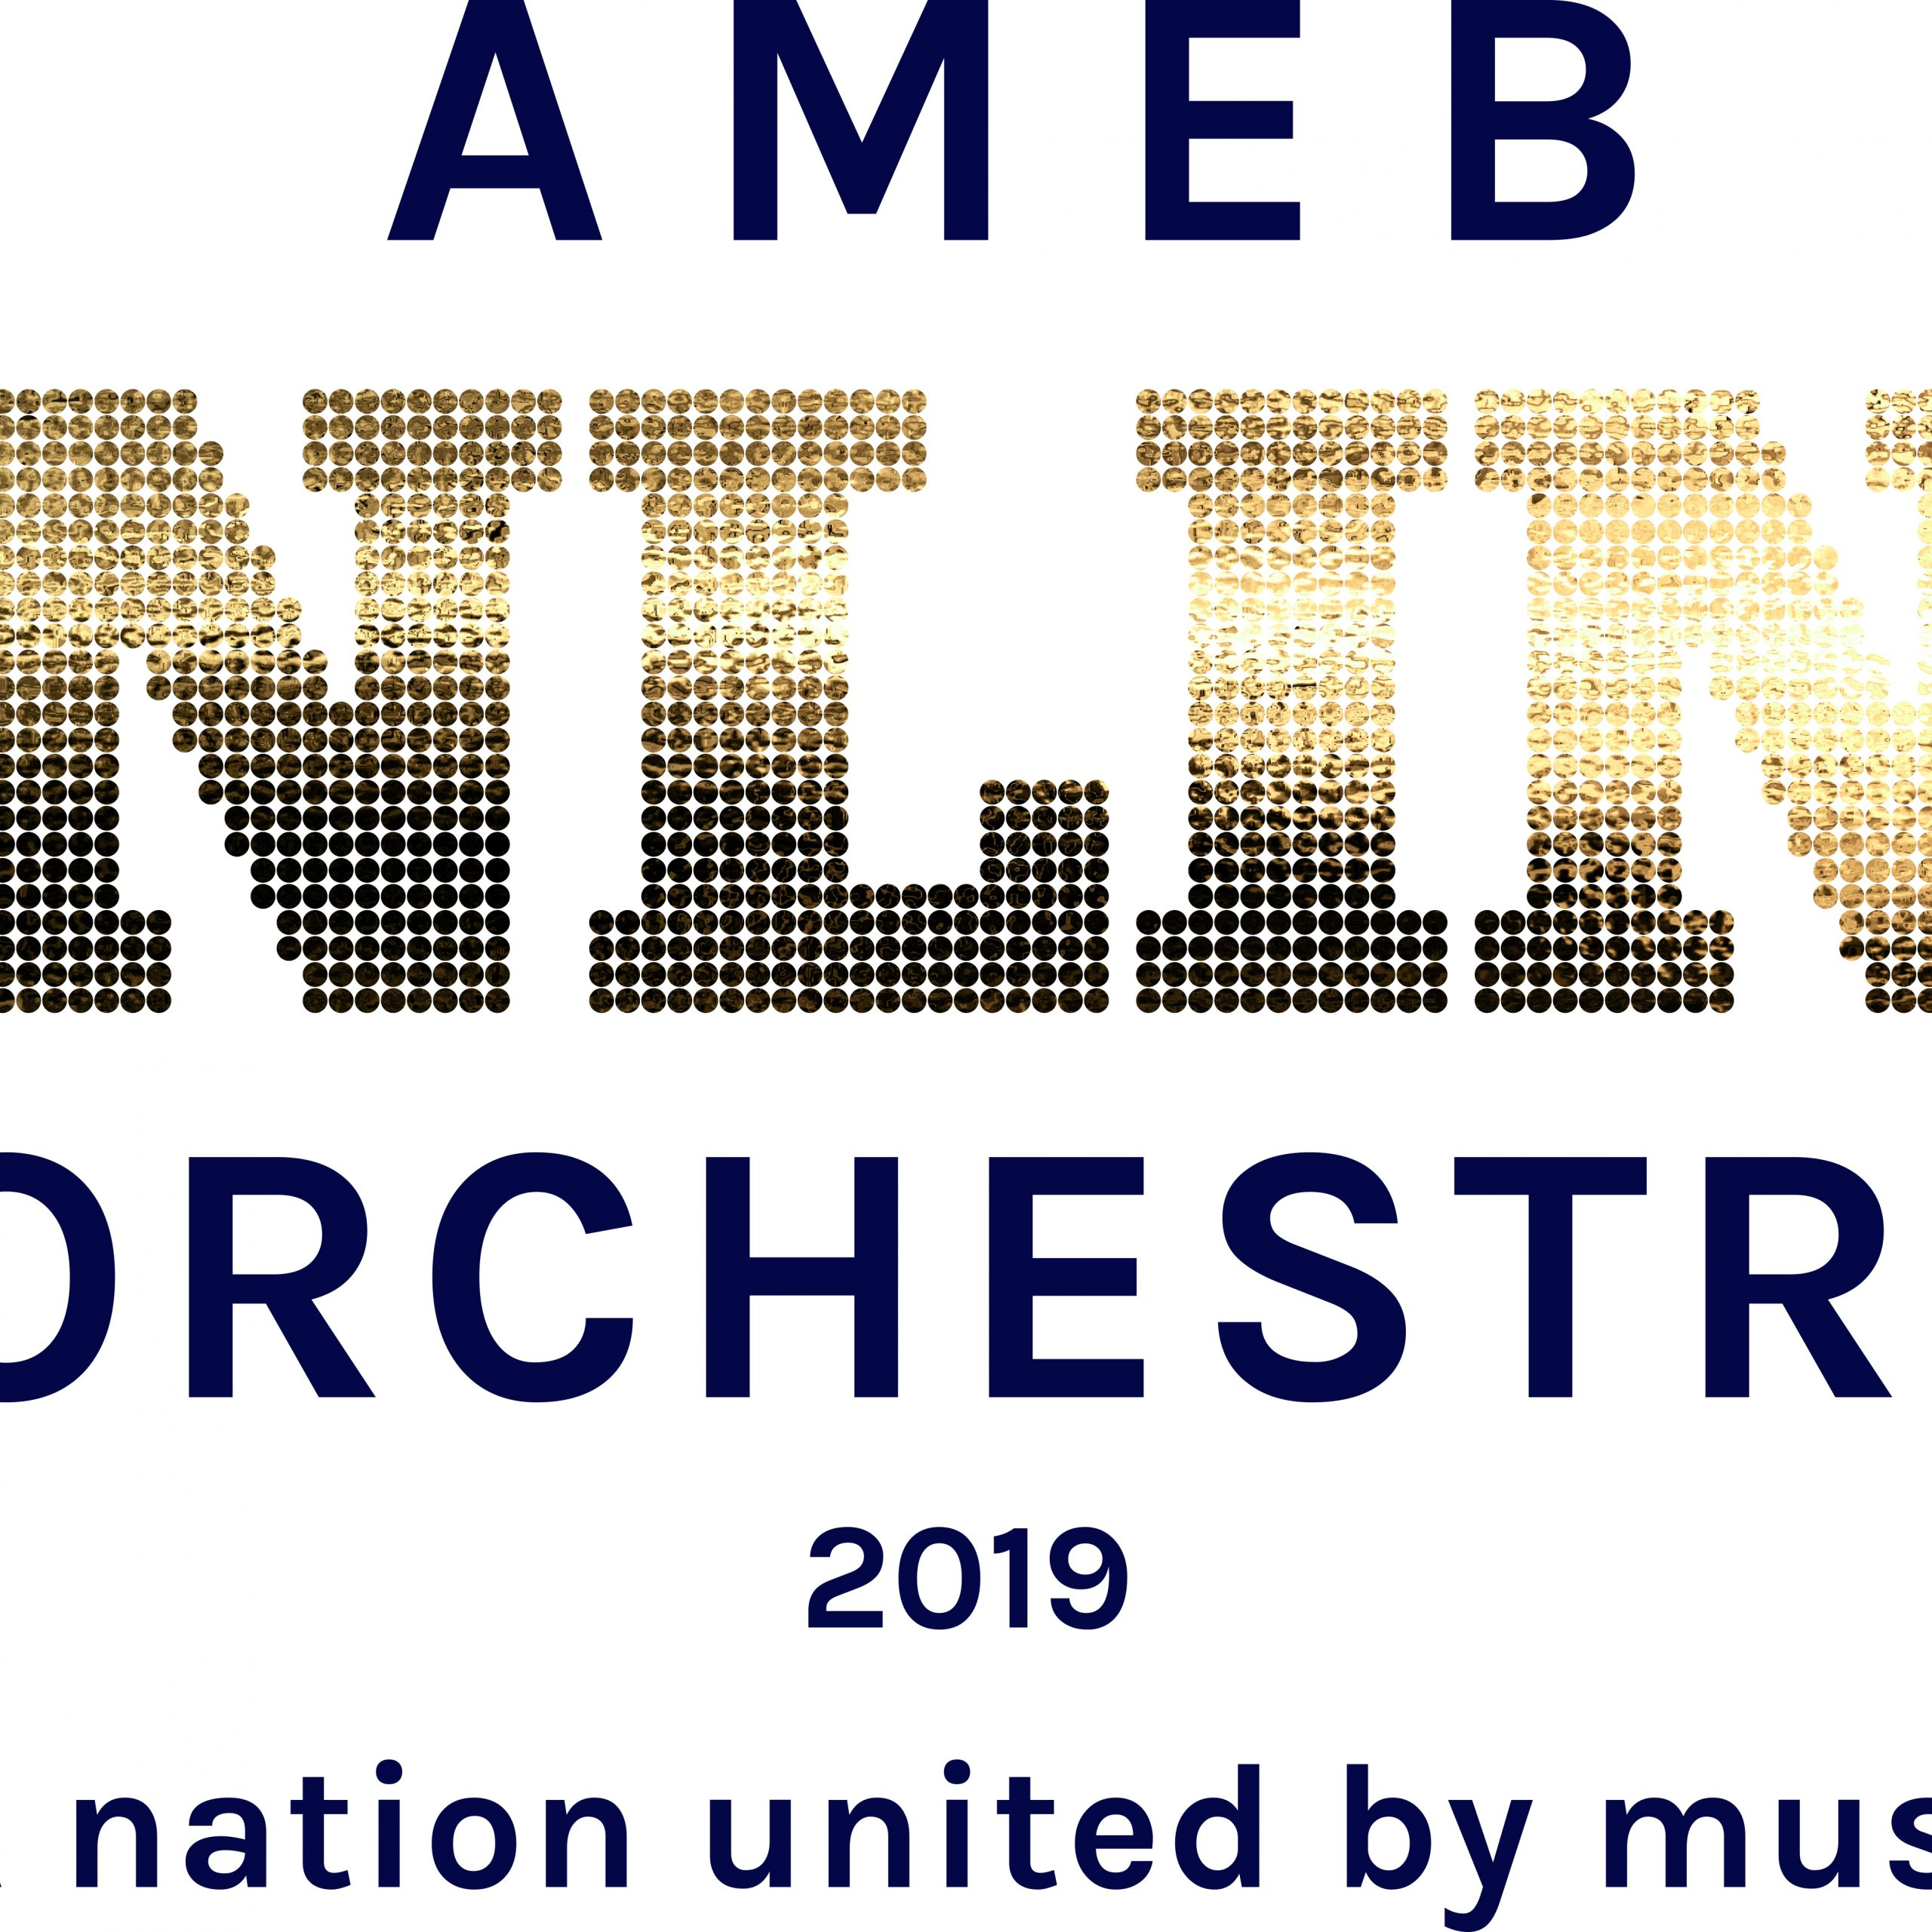 Your step-by-step guide to entering the AMEB Online Orchestra 2019